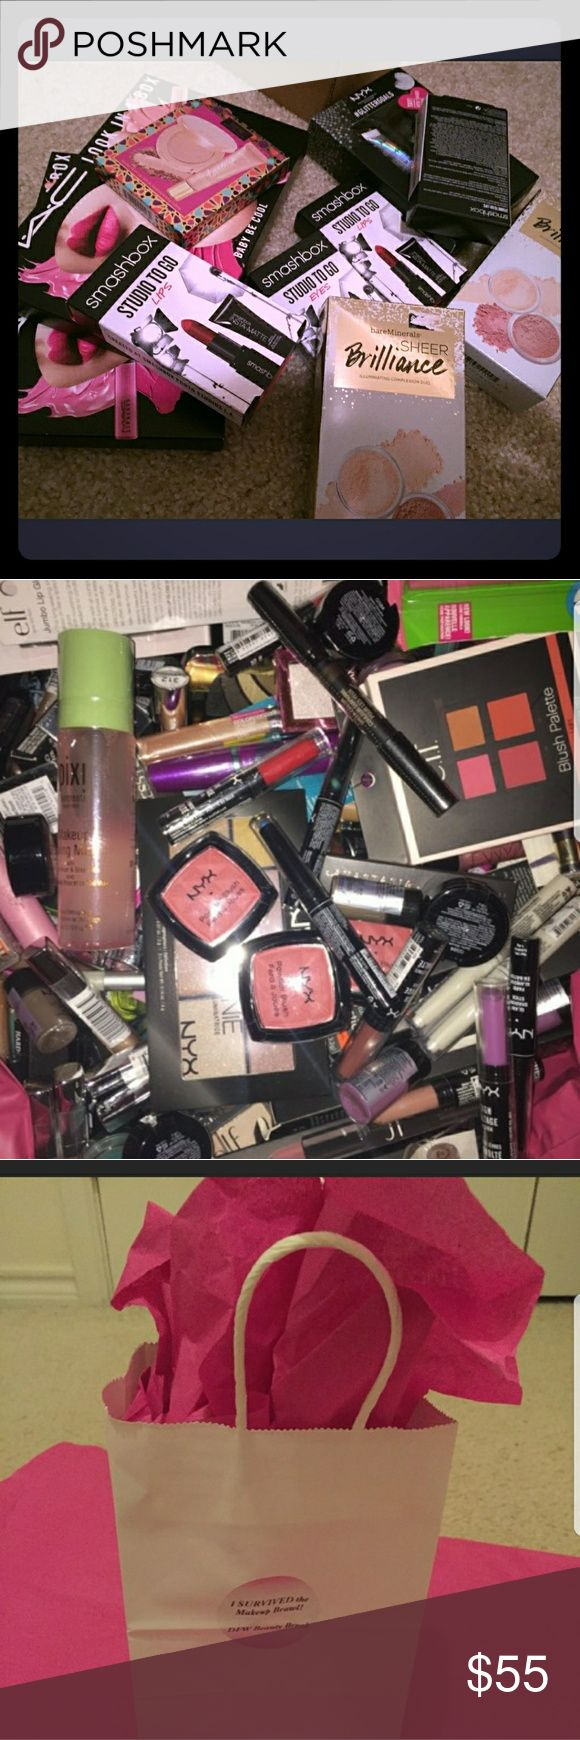 *NEW 35 Pc 💋MakeupBrawl™️ Bags WITH MAC Cosmetics Items will be random with no duplicates. All bags contain mixed premium brands of different varieties, with up to 5 nail selections. The remaining items will be a mix of eye, lip and face products. Some items in your gift bag may be an actual makeup set, palette, or kit with multiple pieces. It will still count as 1 item out of the 35. You will be sure to find your favorite brands in our bags! If you prefer specific shades or brands, let us…